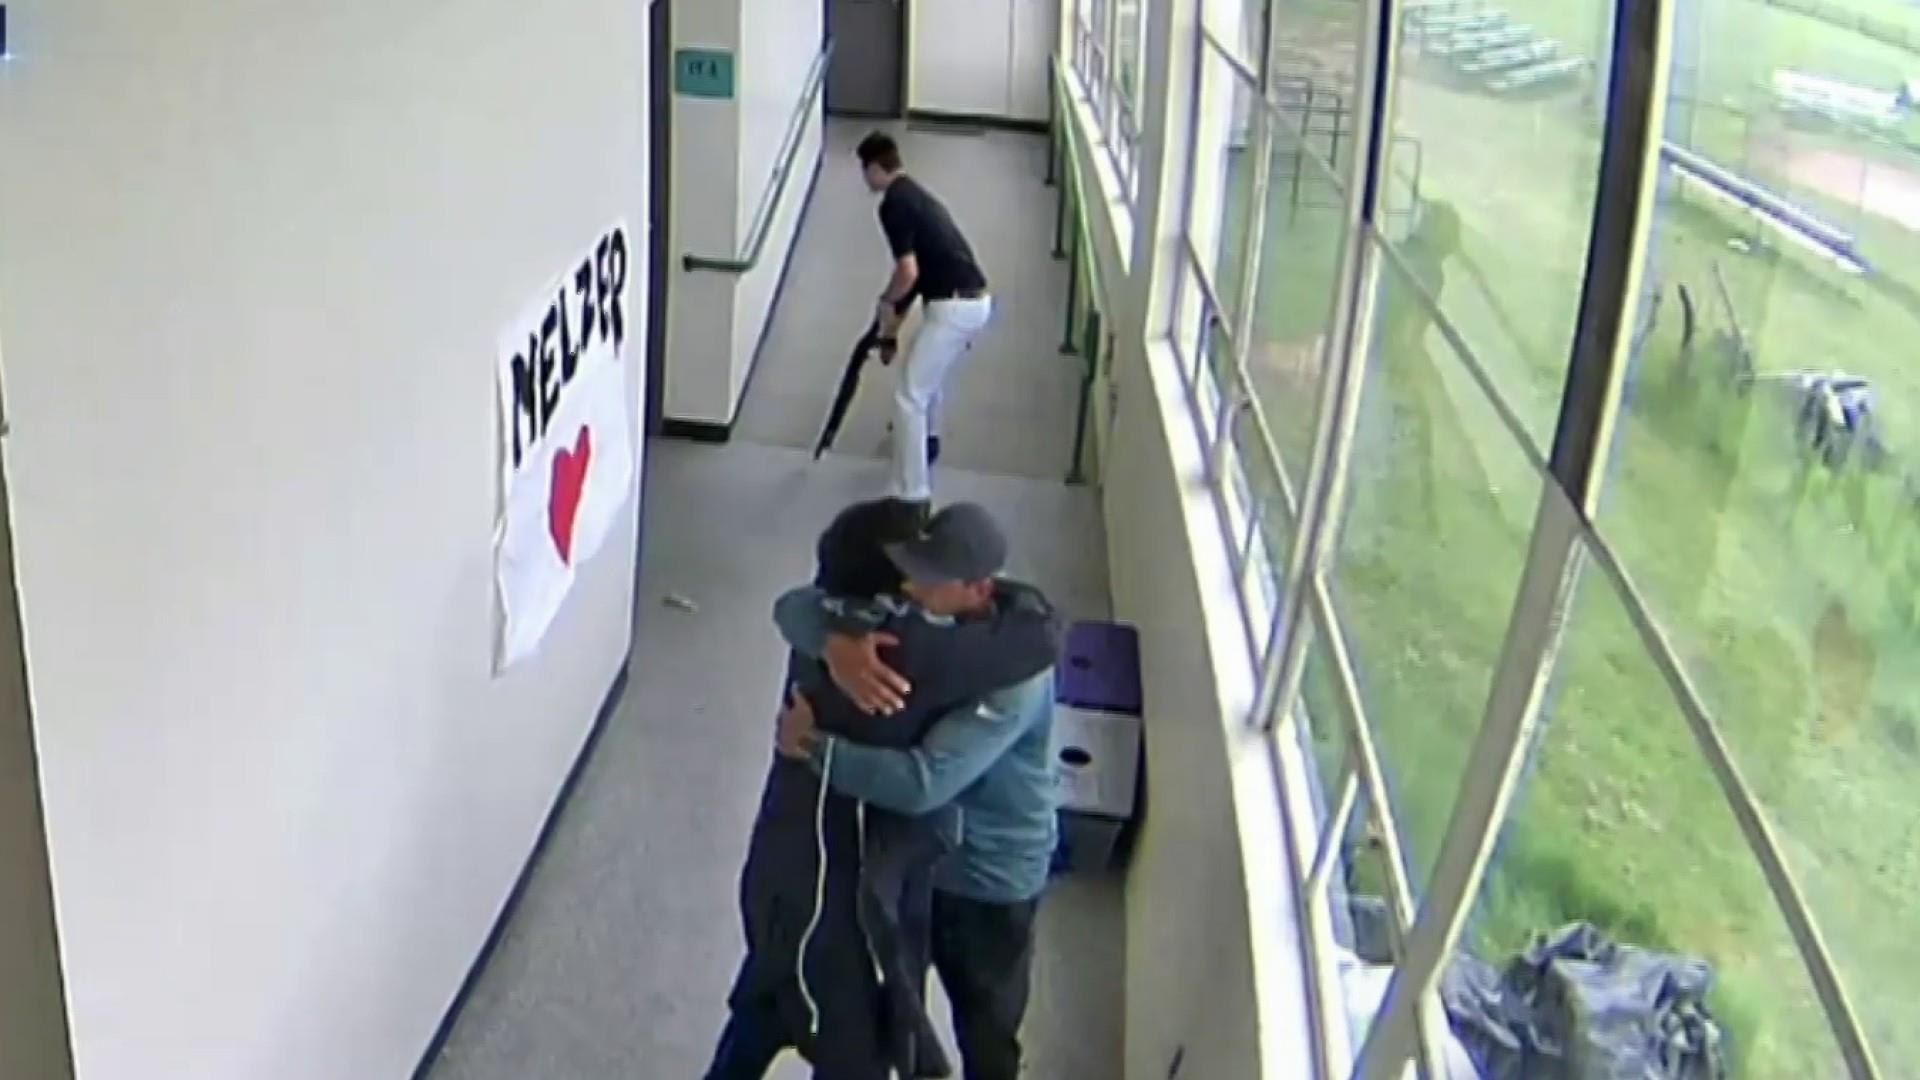 Video shows moment Oregon coach disarmed and hugged student with gun